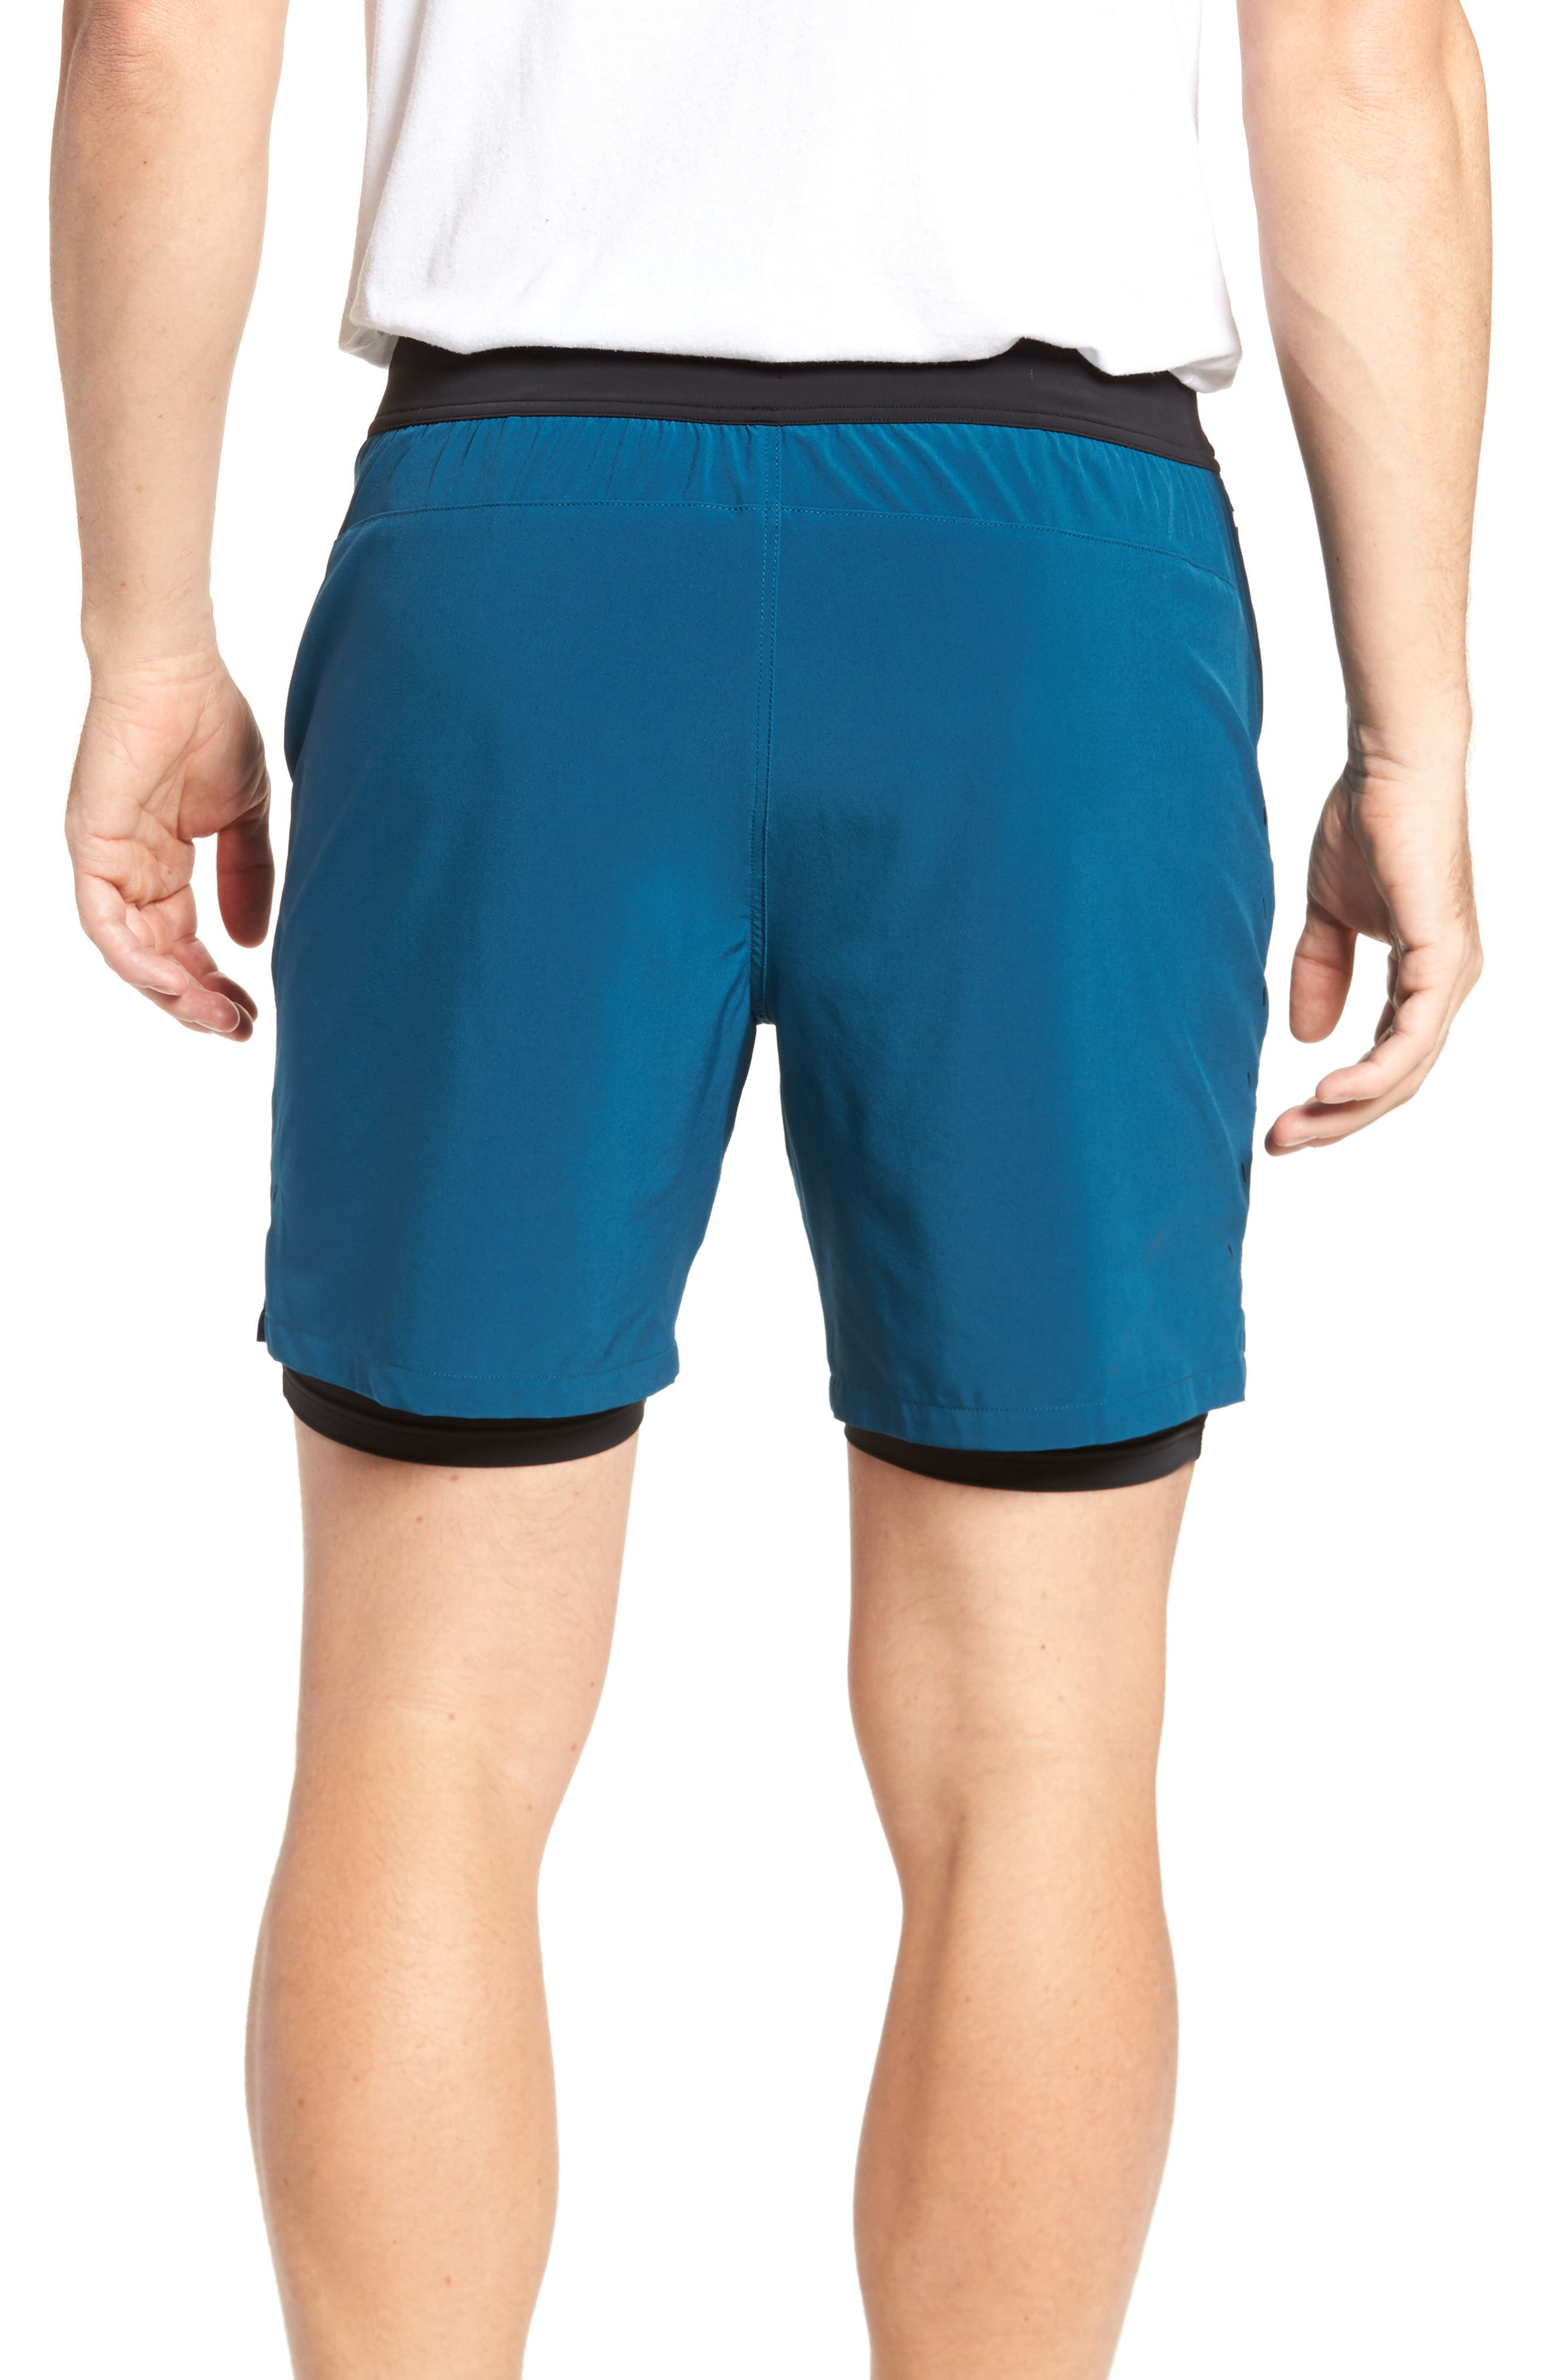 Interval Athletic Shorts,                             Alternate thumbnail 2, color,                             Dark Teal